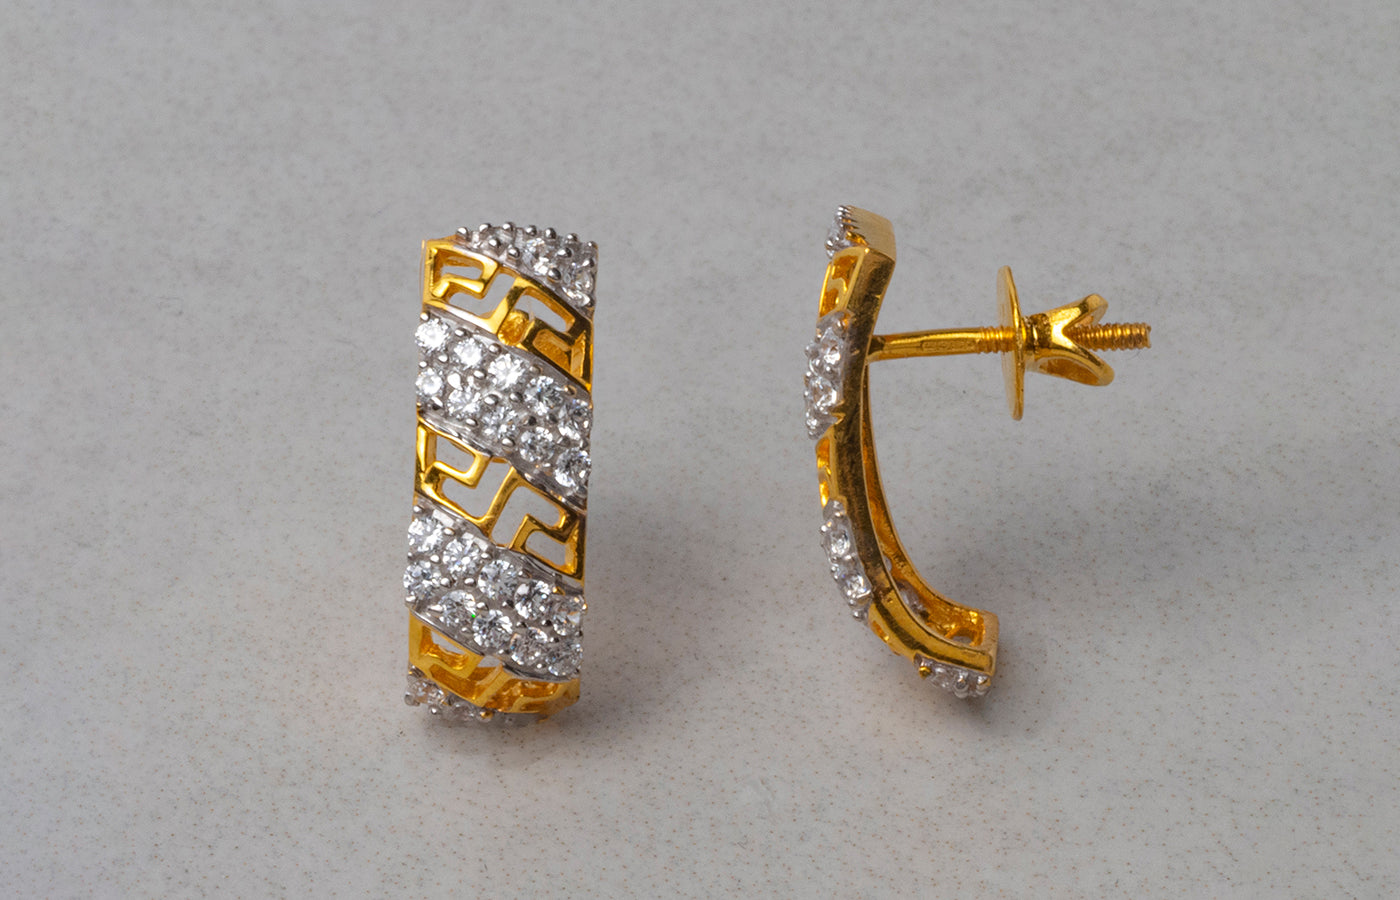 22ct Gold Cuff Style Stud Earrings set with Swarovski Zirconias (4.56g) ET10220